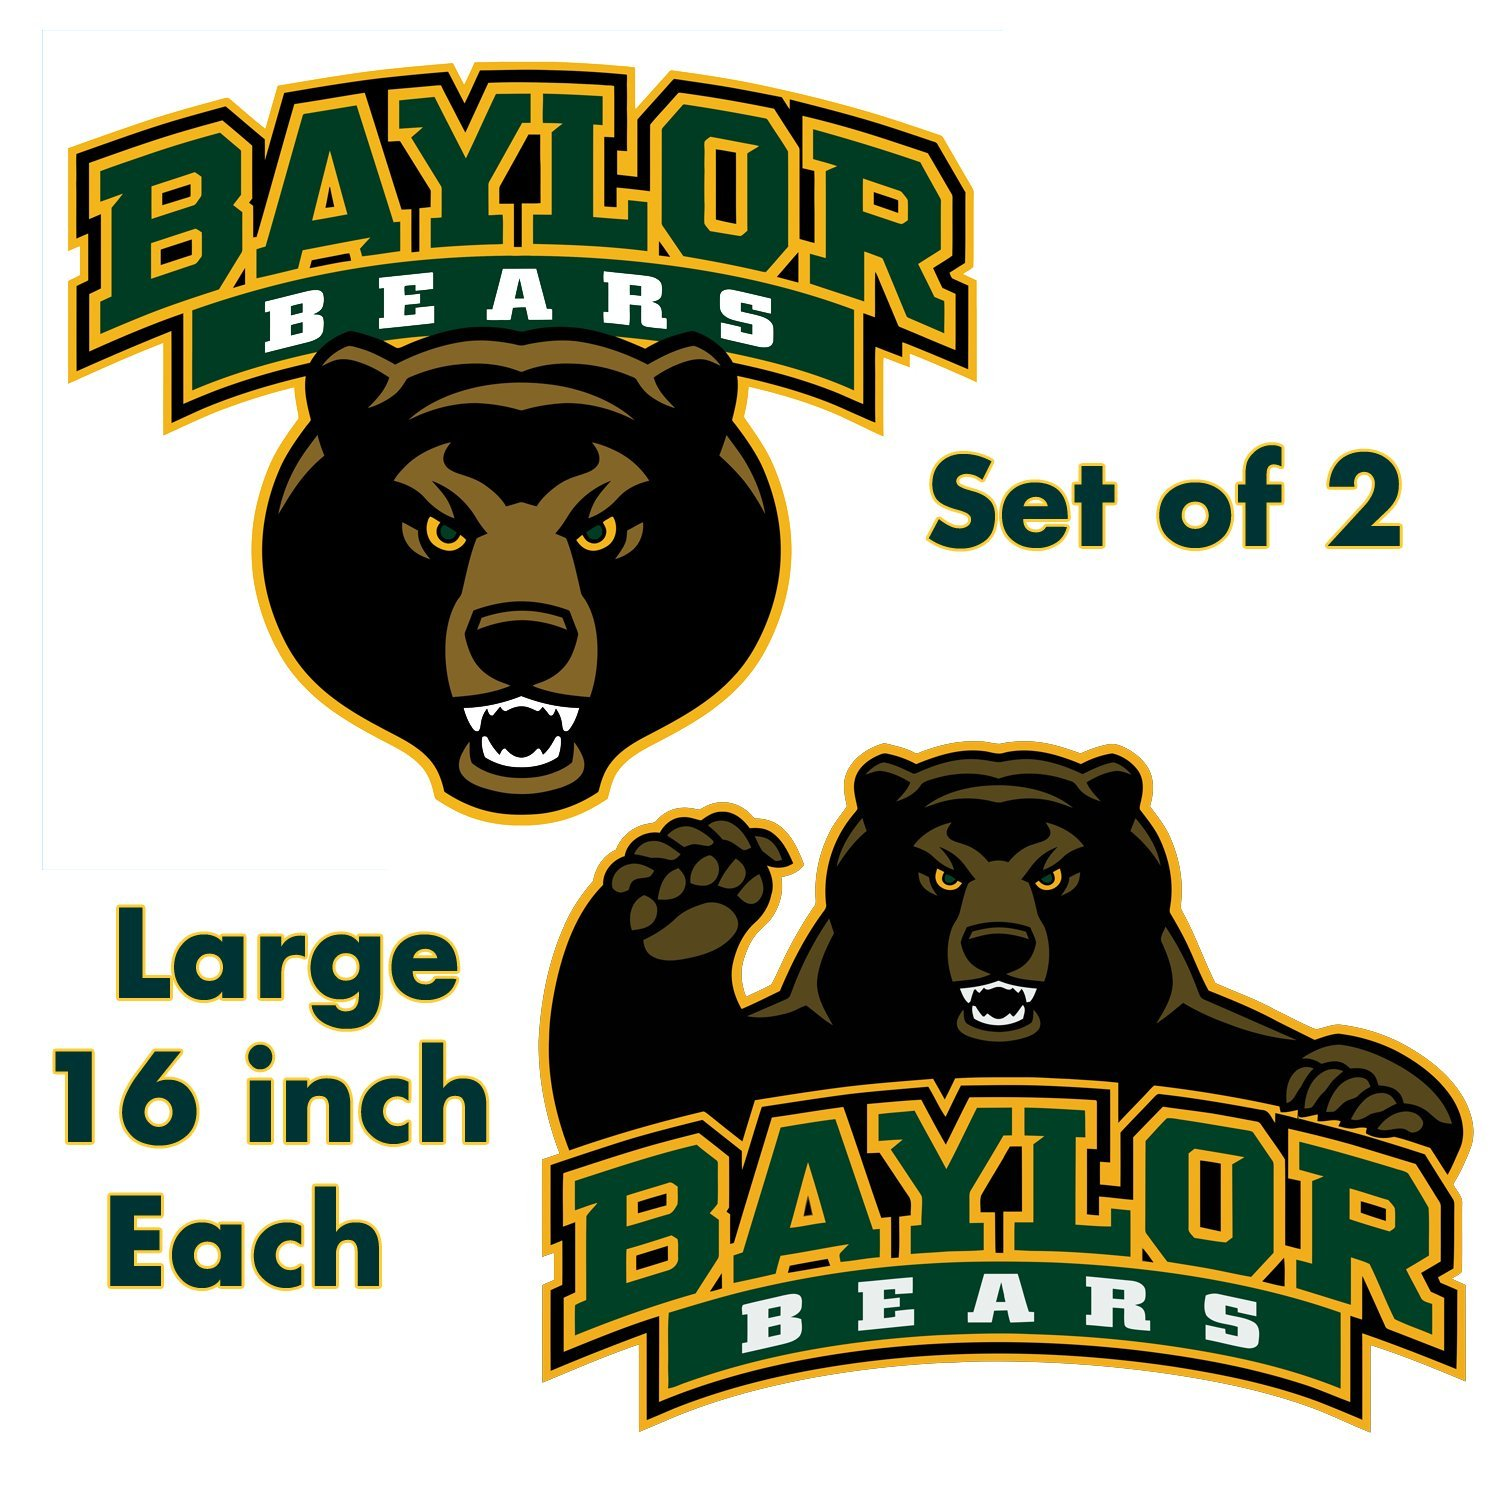 Baylor Bears - Large 16in Circle Cornhole Decals / Set of 2 University of Baylor by Retro Tacs (Image #1)